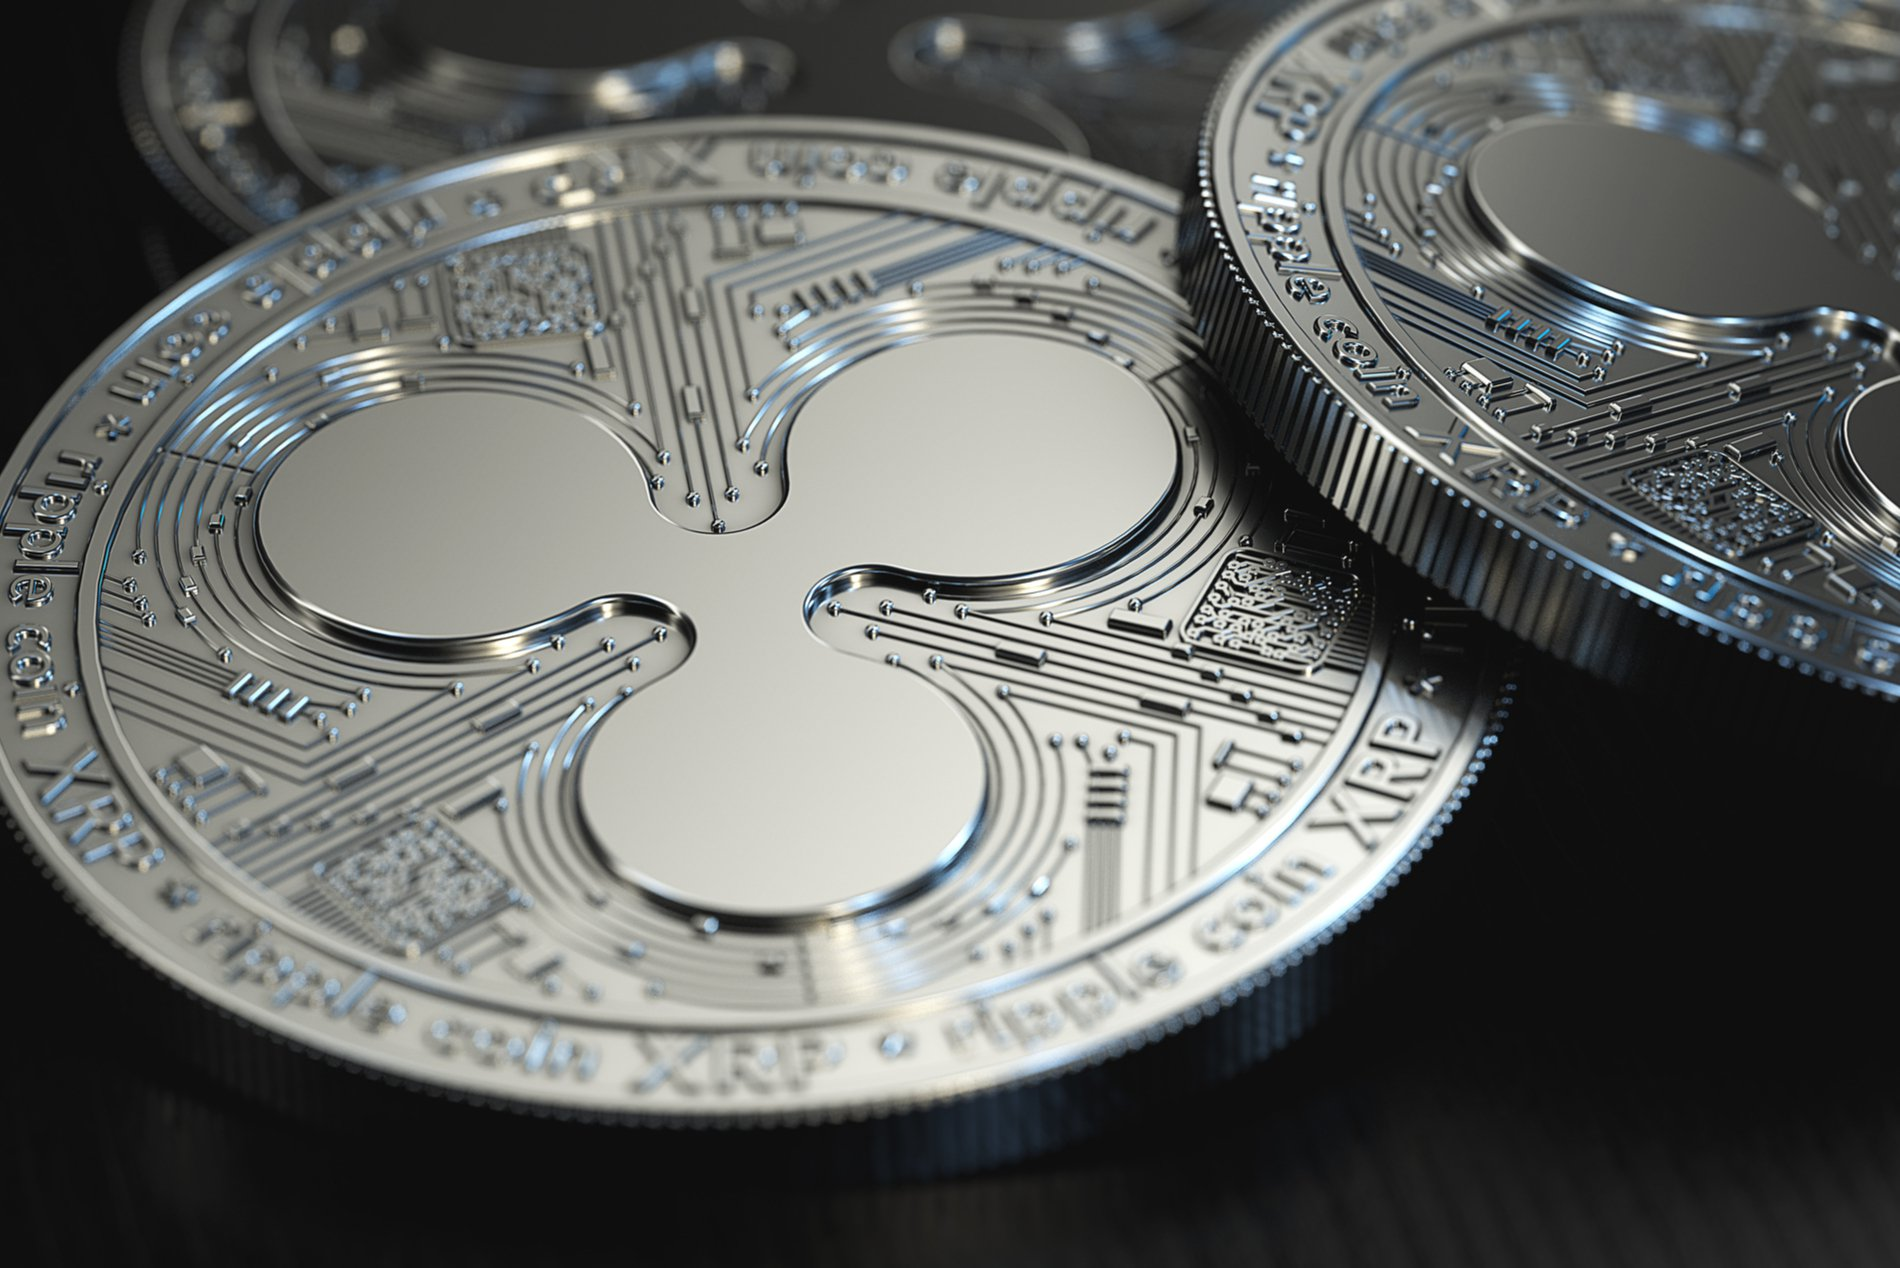 Payments Platform Uphold Completes XRP Ledger Integration - CoinDesk